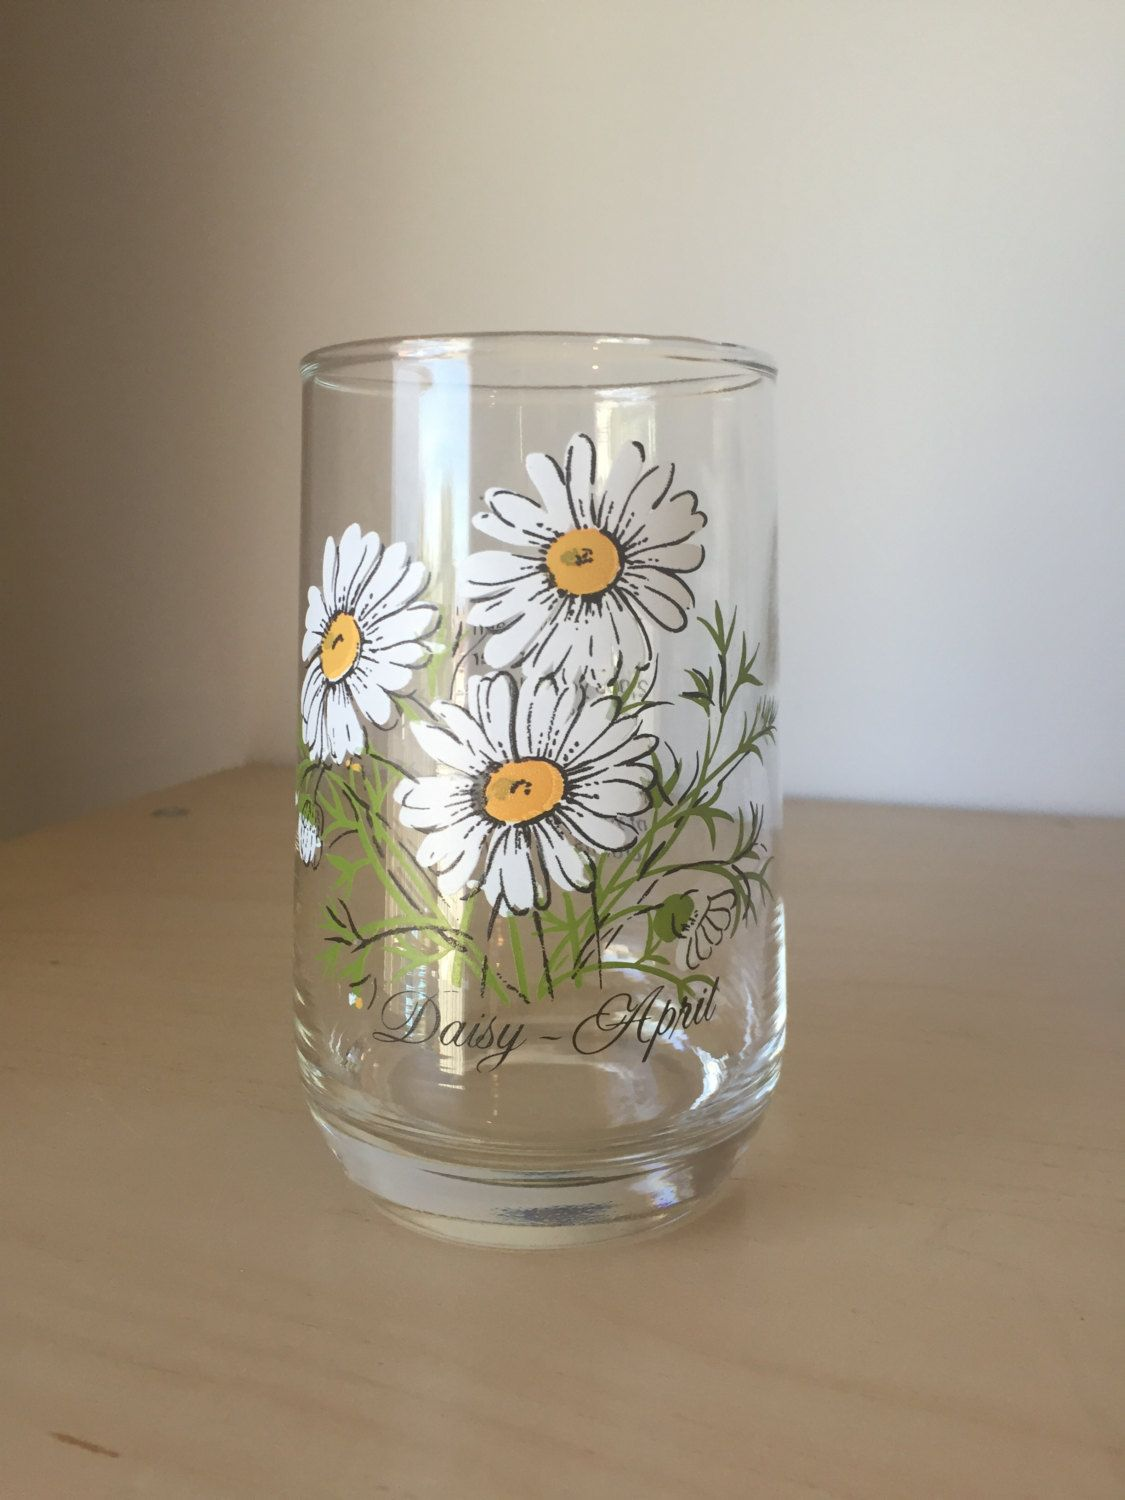 Vintage flower of the month drinking glass april daisy white and vintage flower of the month drinking glass april daisy white and yellow flower izmirmasajfo